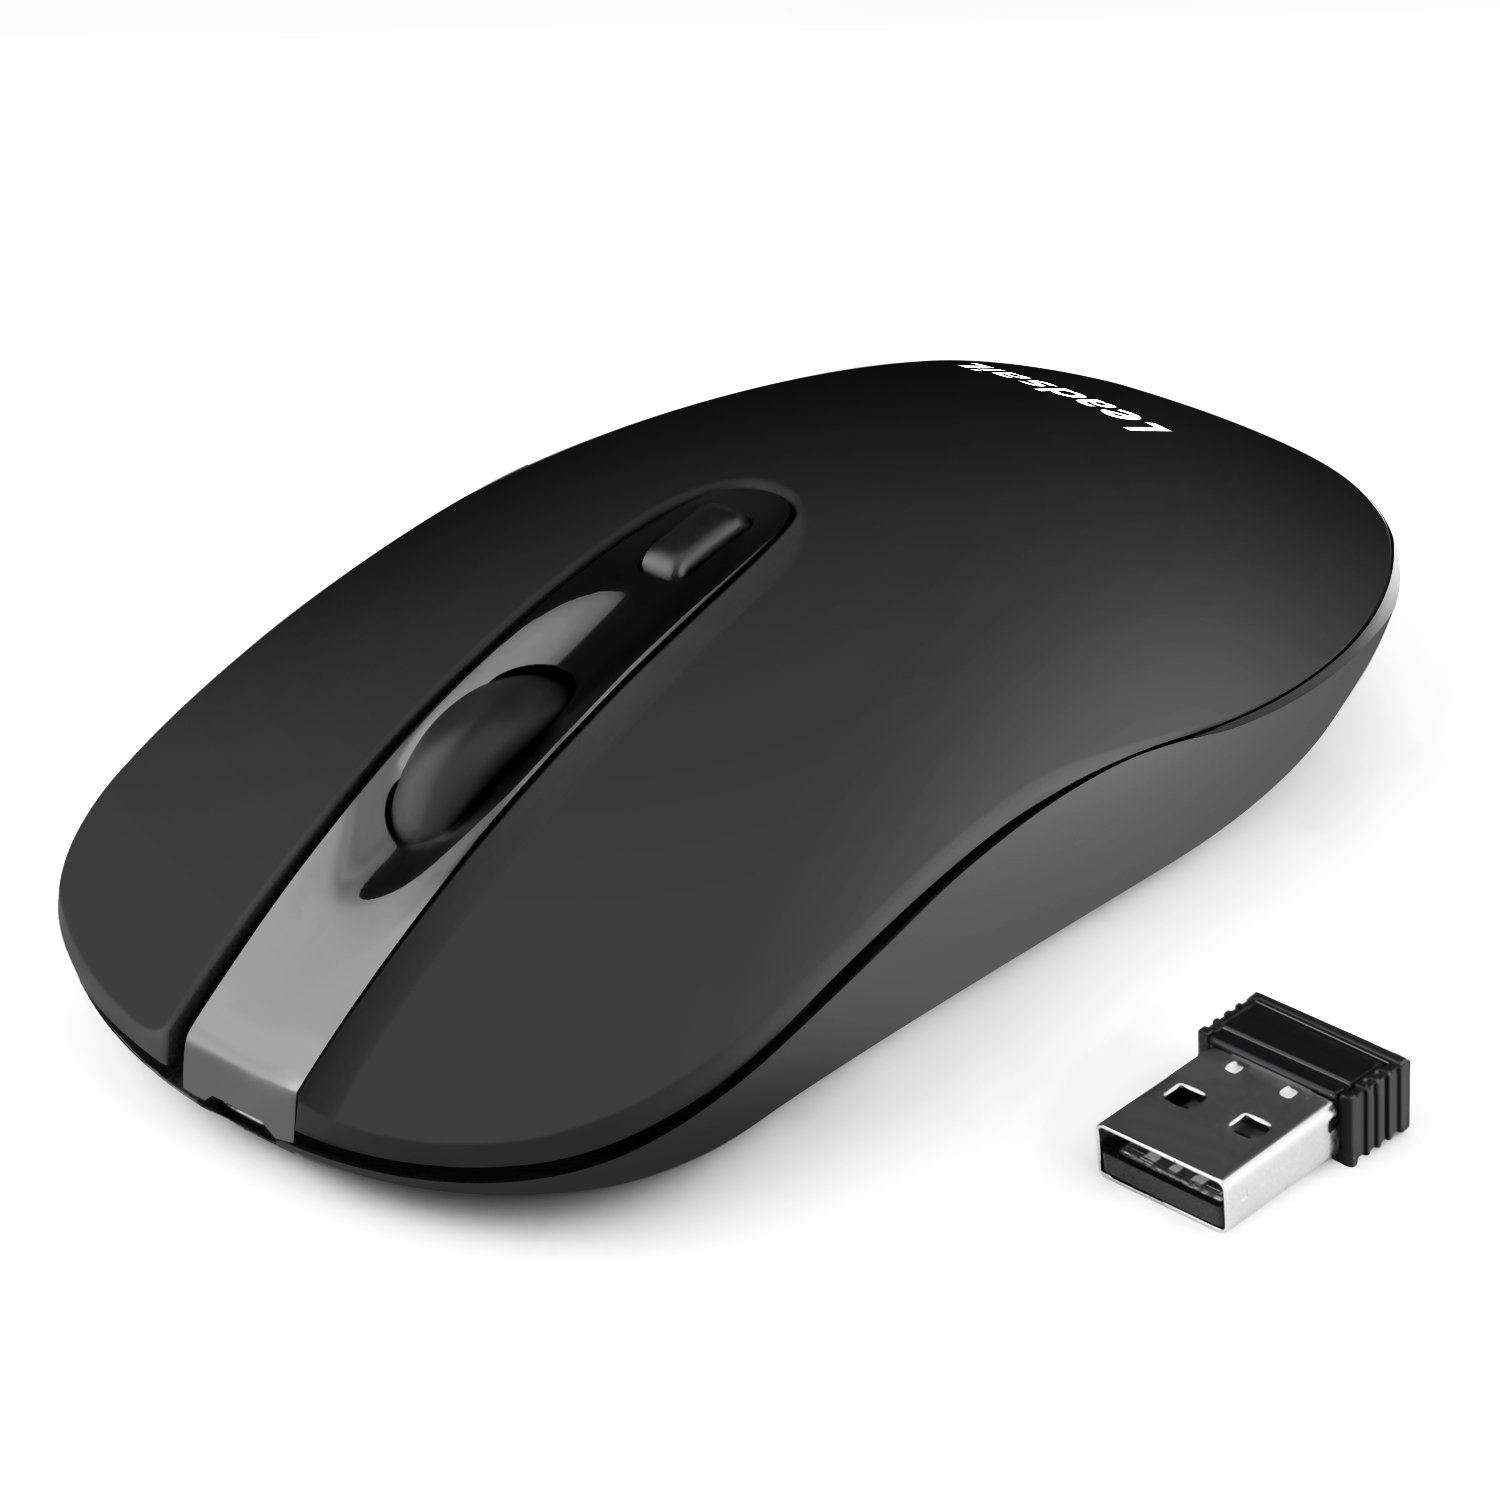 LeadsaiL Rechargeable Wireless Mouse,Computer Mouse Wireless,Cordless Mouse Silent Click,Mini USB Wireless Mouse Ergonomic,Gaming Mouse with Nano Receiver, 2.4G, 5 Adjustable DPI Up to 2400